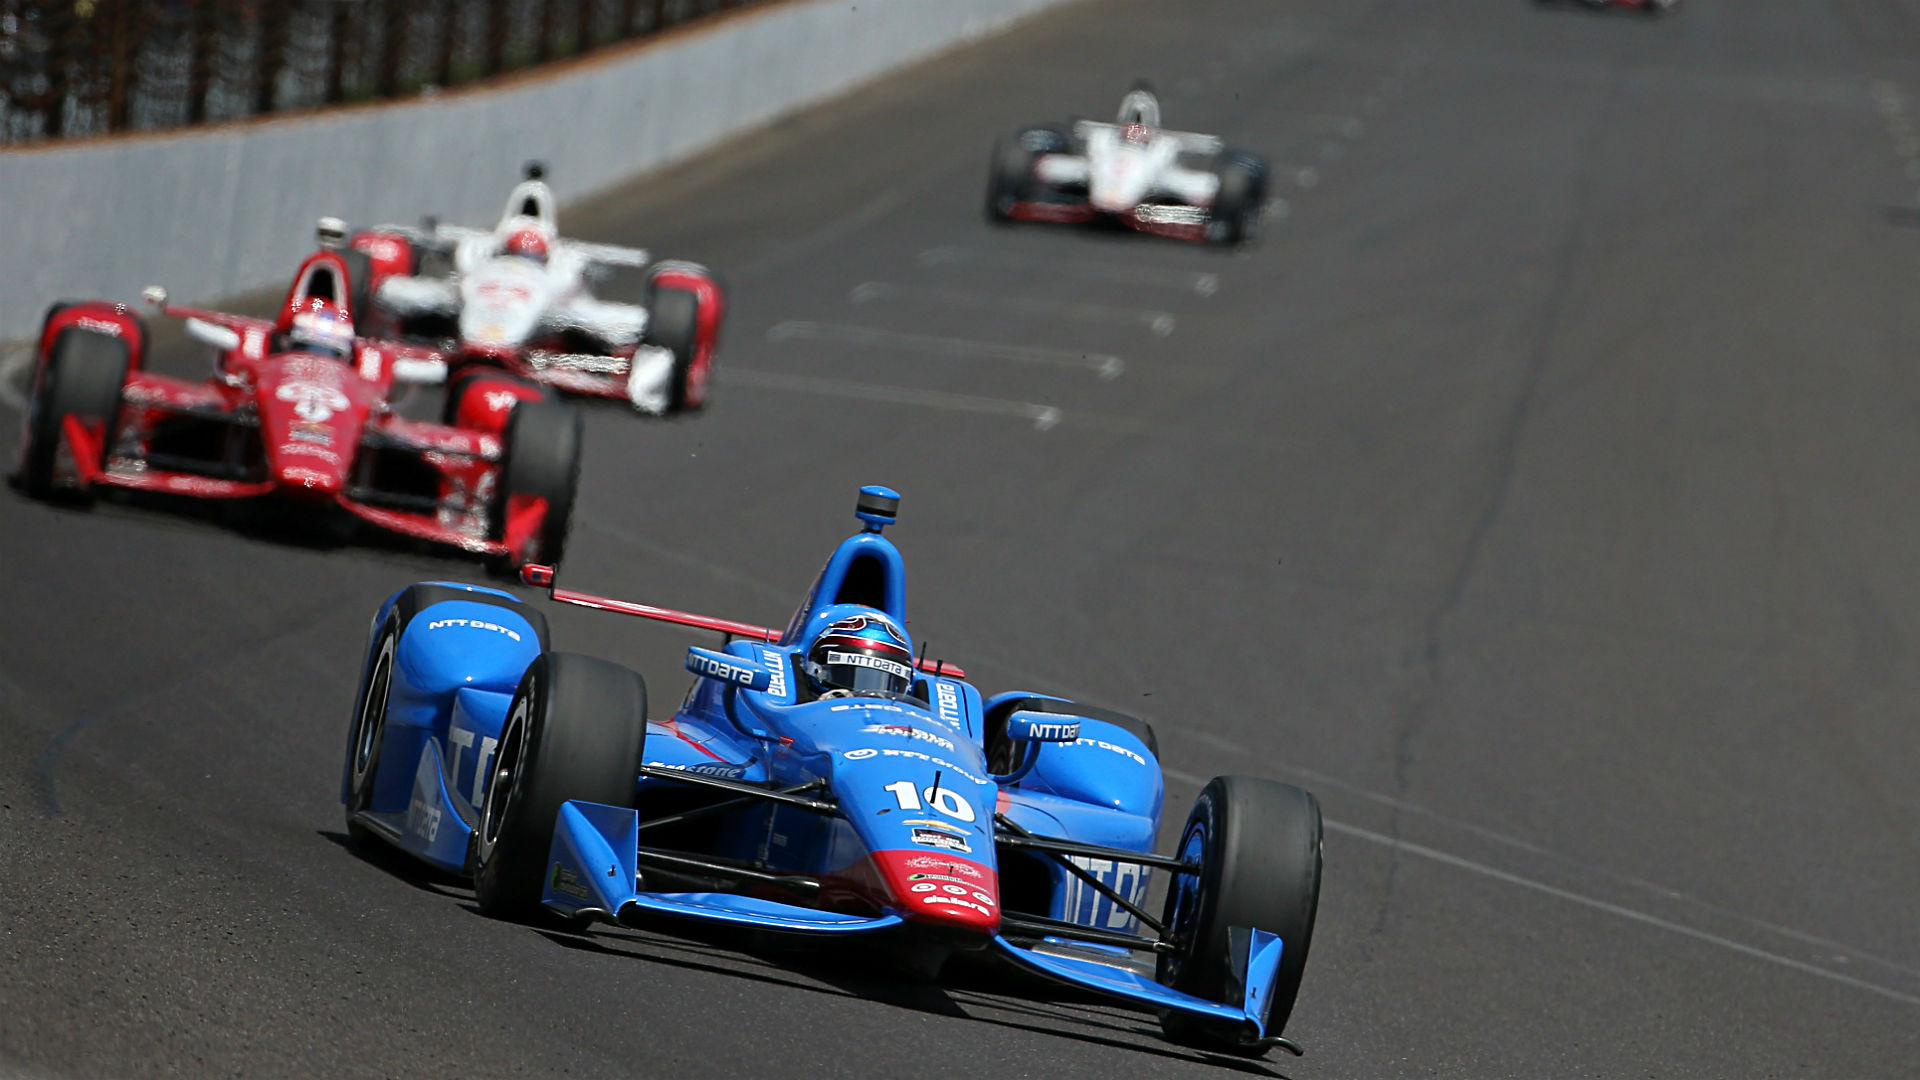 Indy 500 2016: Time, TV channel, online stream | NASCAR ...